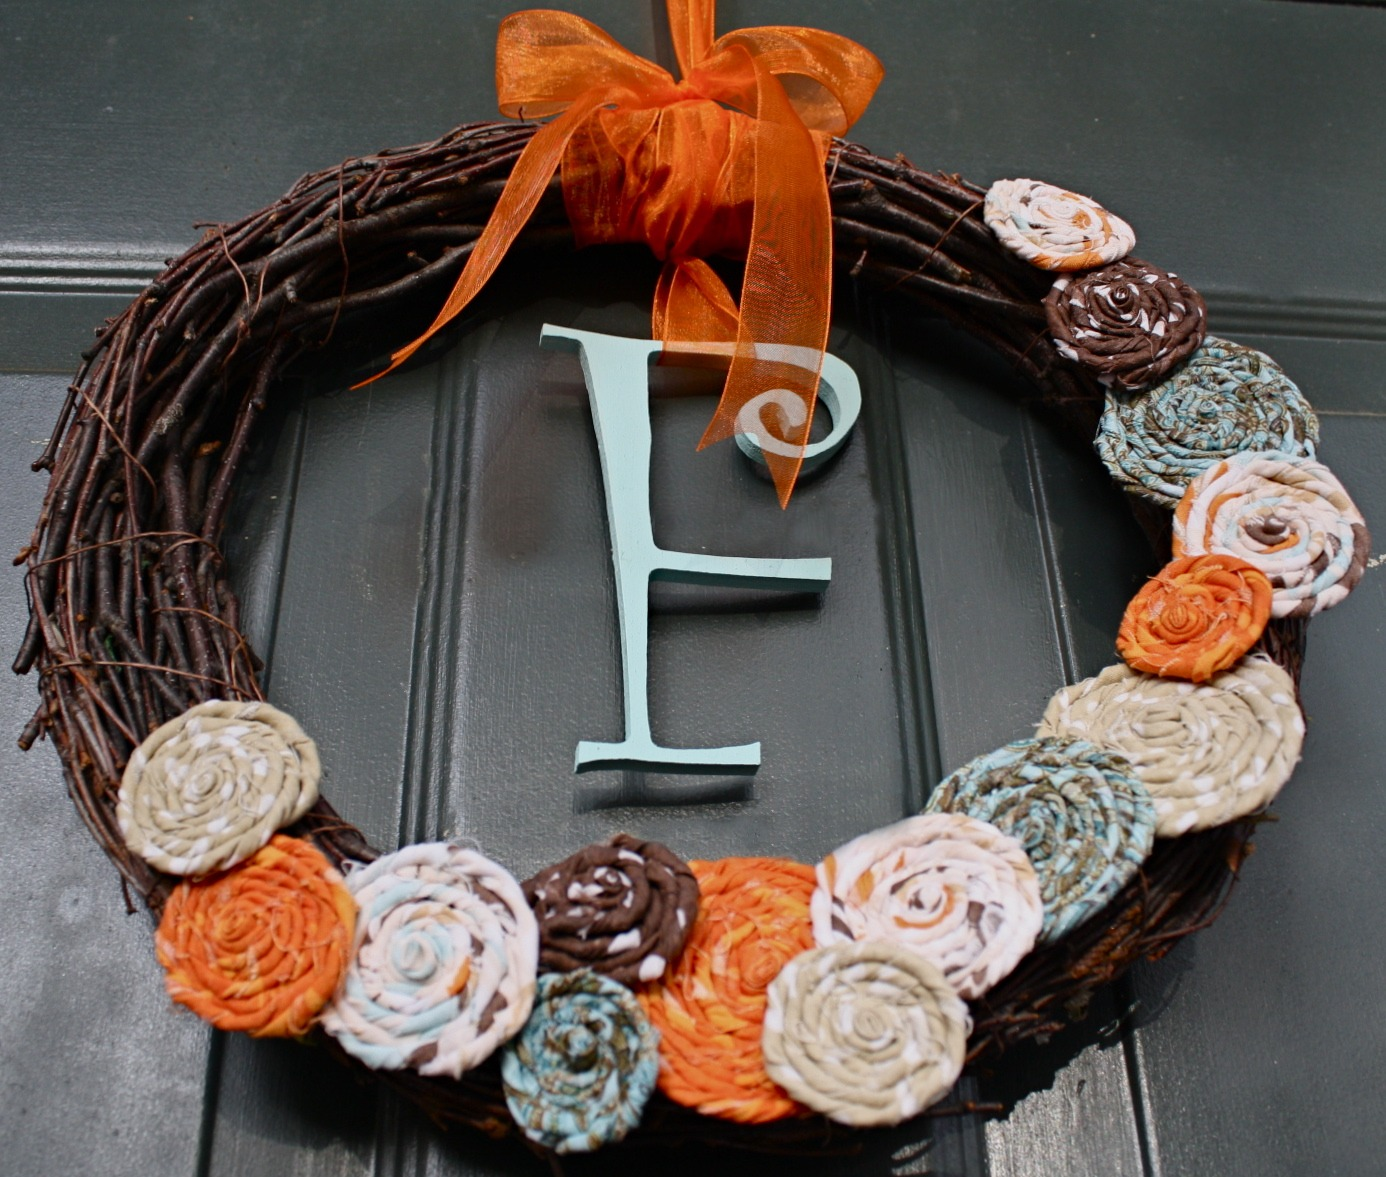 Things made an adorable Fall Wreath  I love the rolled fabric flowersFall Craft Ideas For The Home